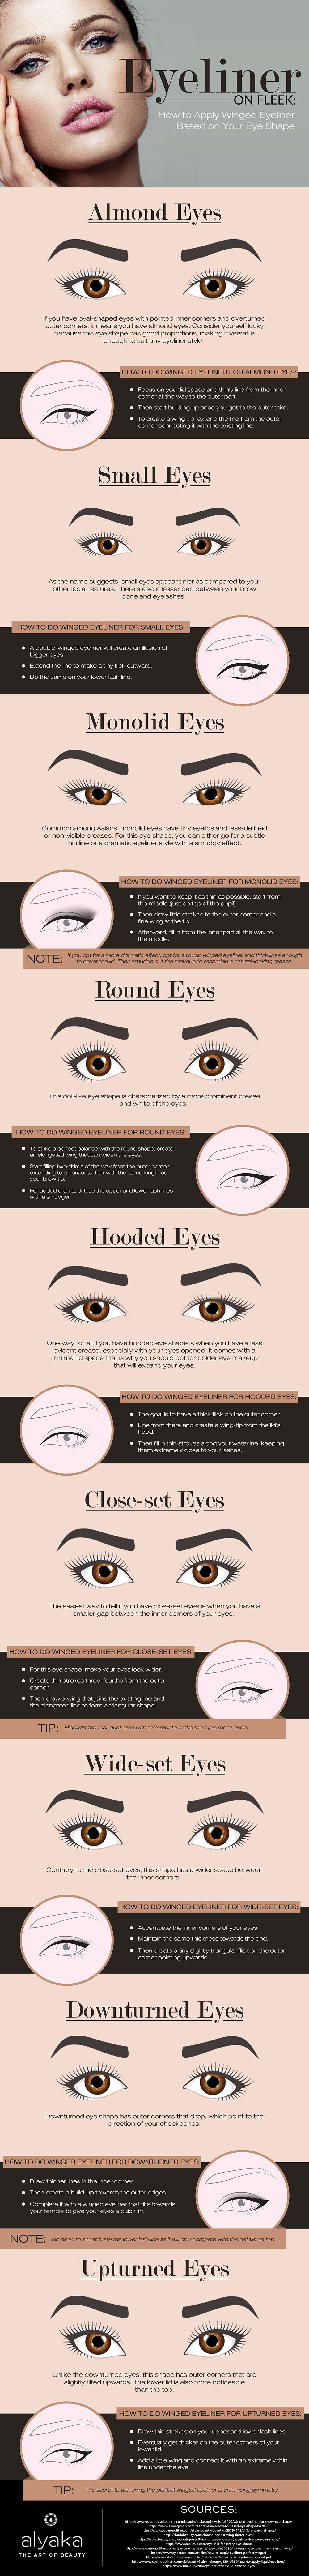 How to Do Winged Eyeliner for Different Eye Shapes Infographic